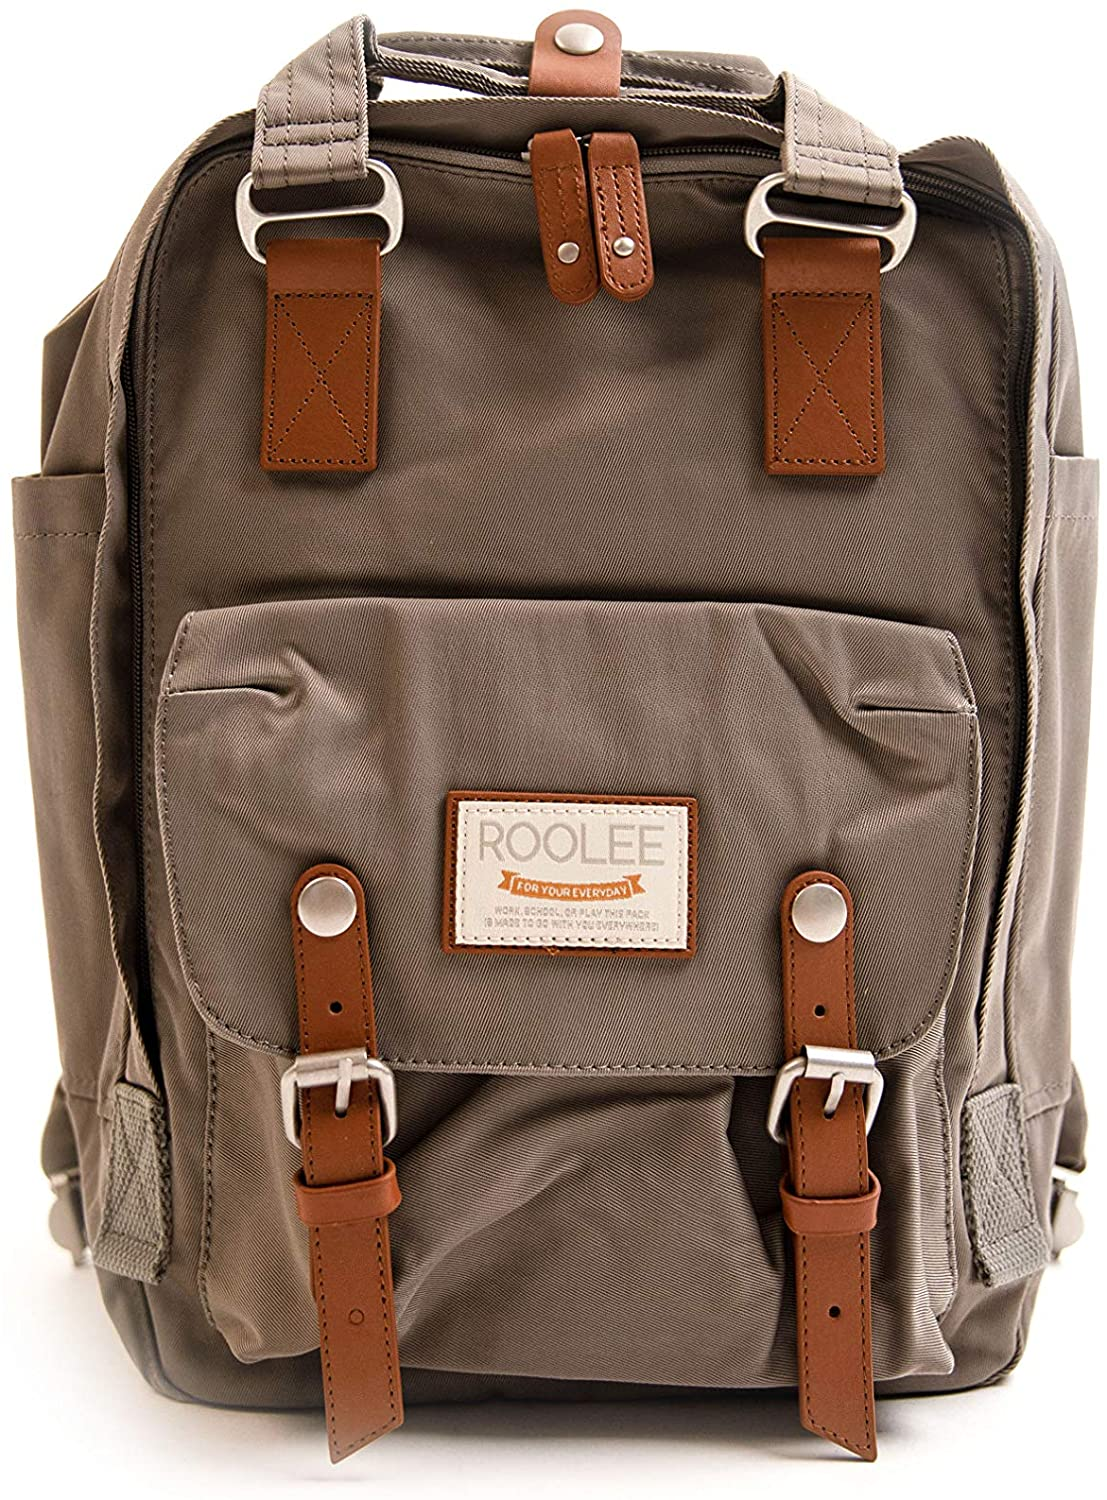 ROOLEE- Barcelona Backpack, School and Laptop Backpacks